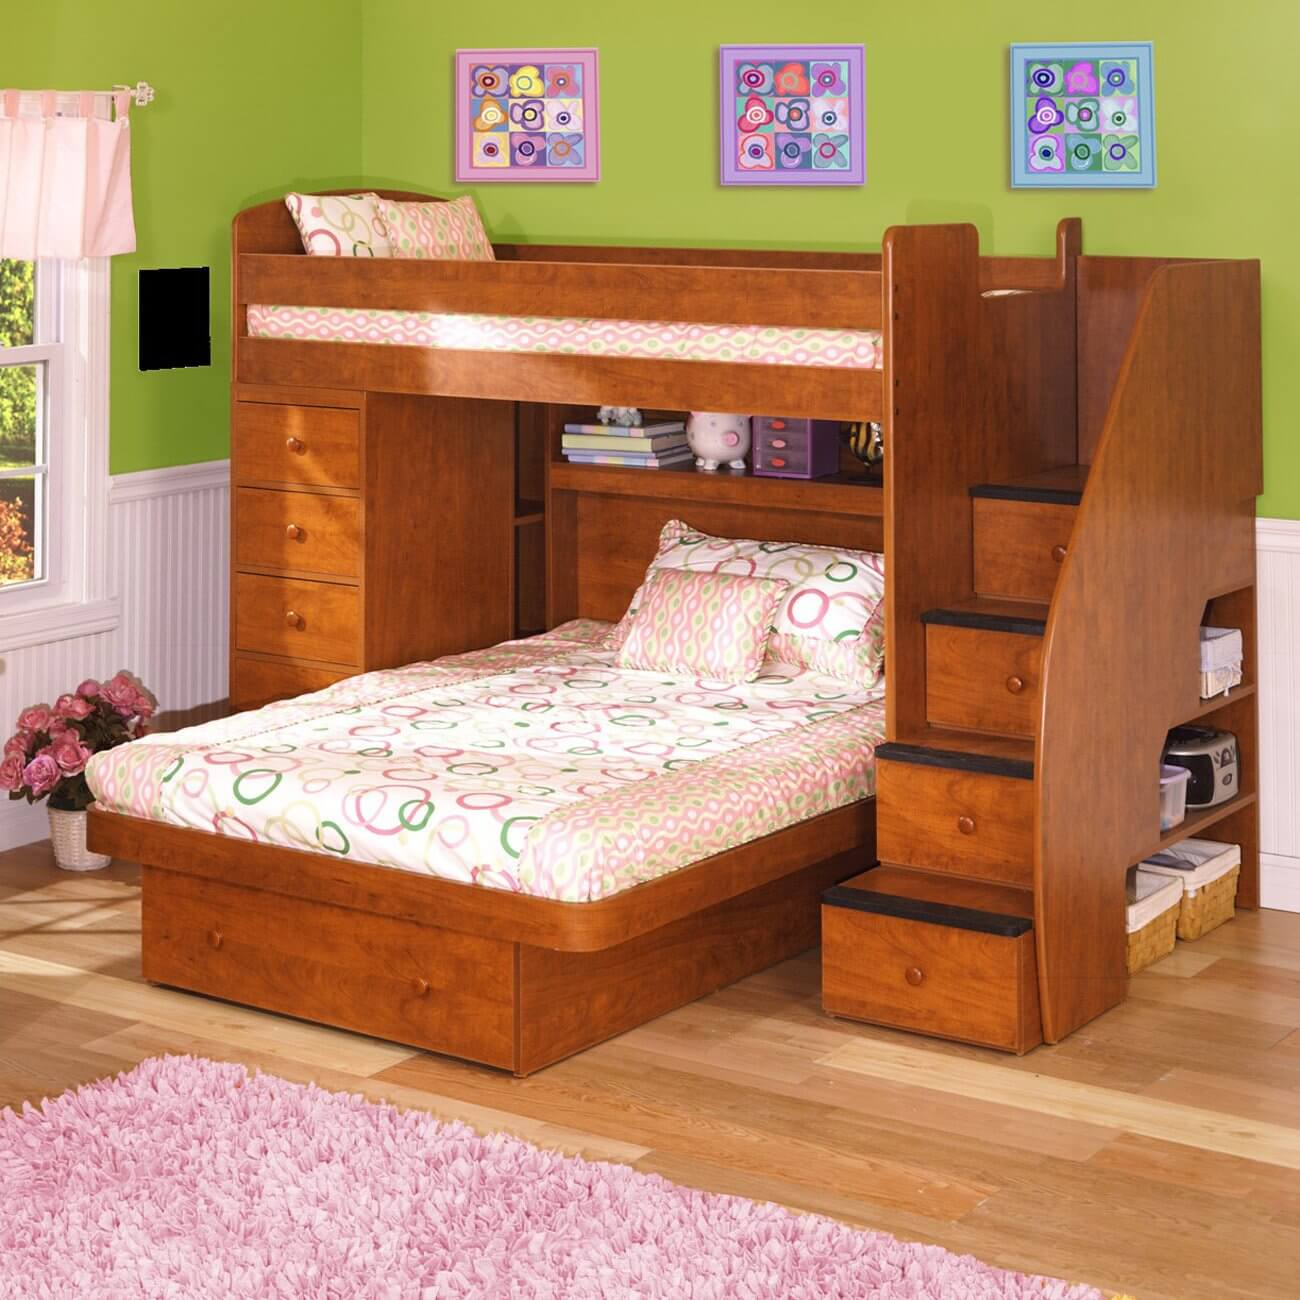 Bunk bed with desk and sofa bed - Bunk Bed With Desk And Sofa Bed 57